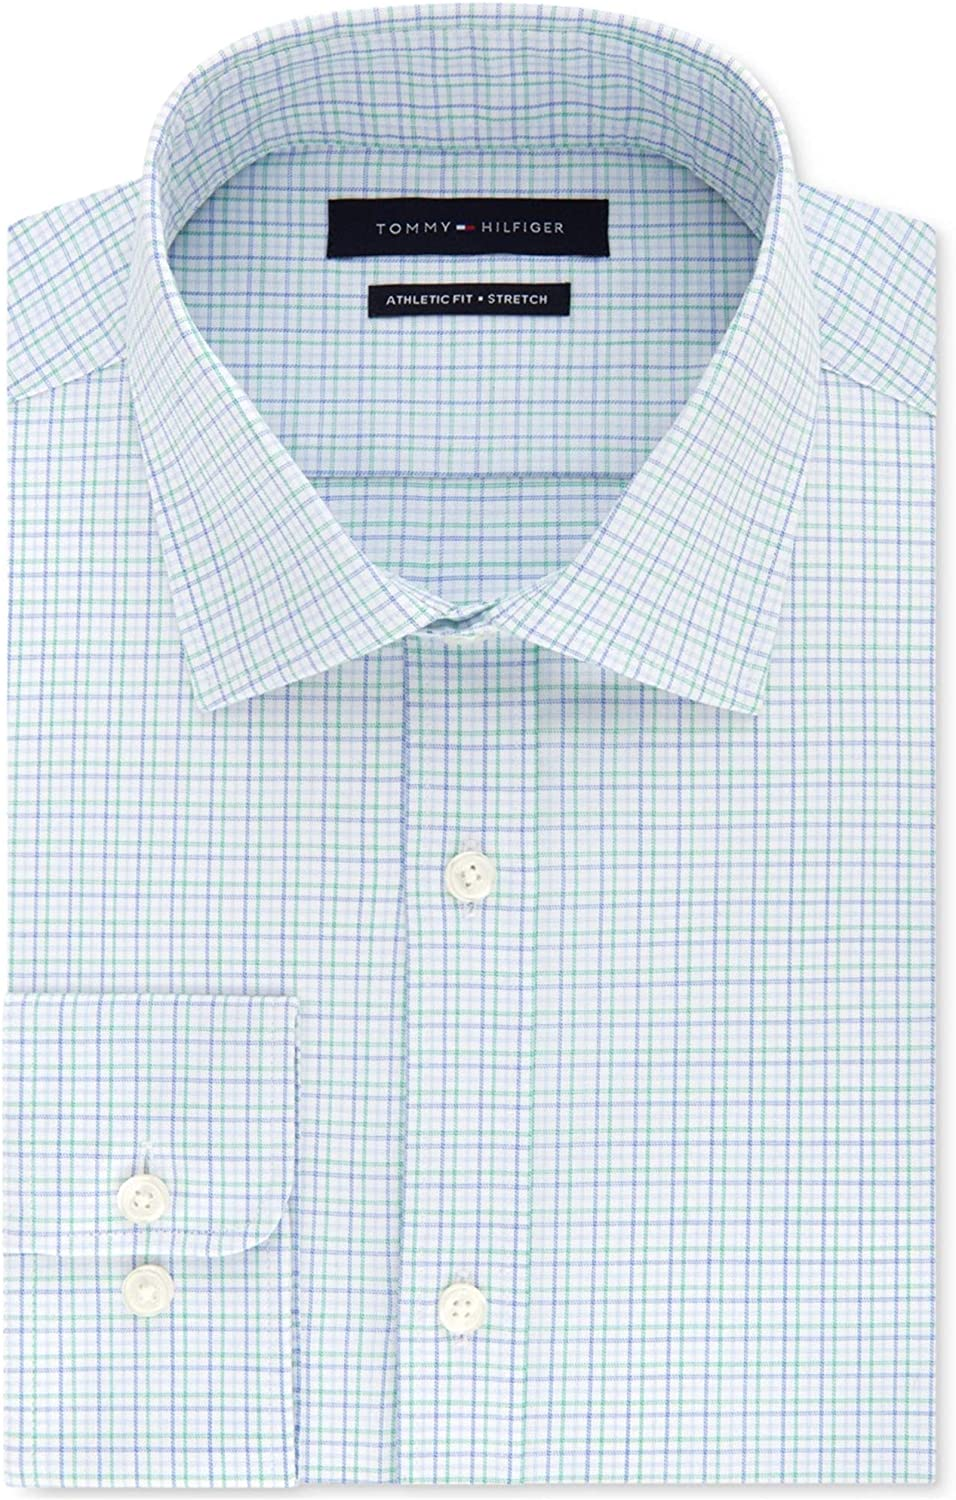 Tommy Hilfiger Mens Fitted Button Up Dress Shirt